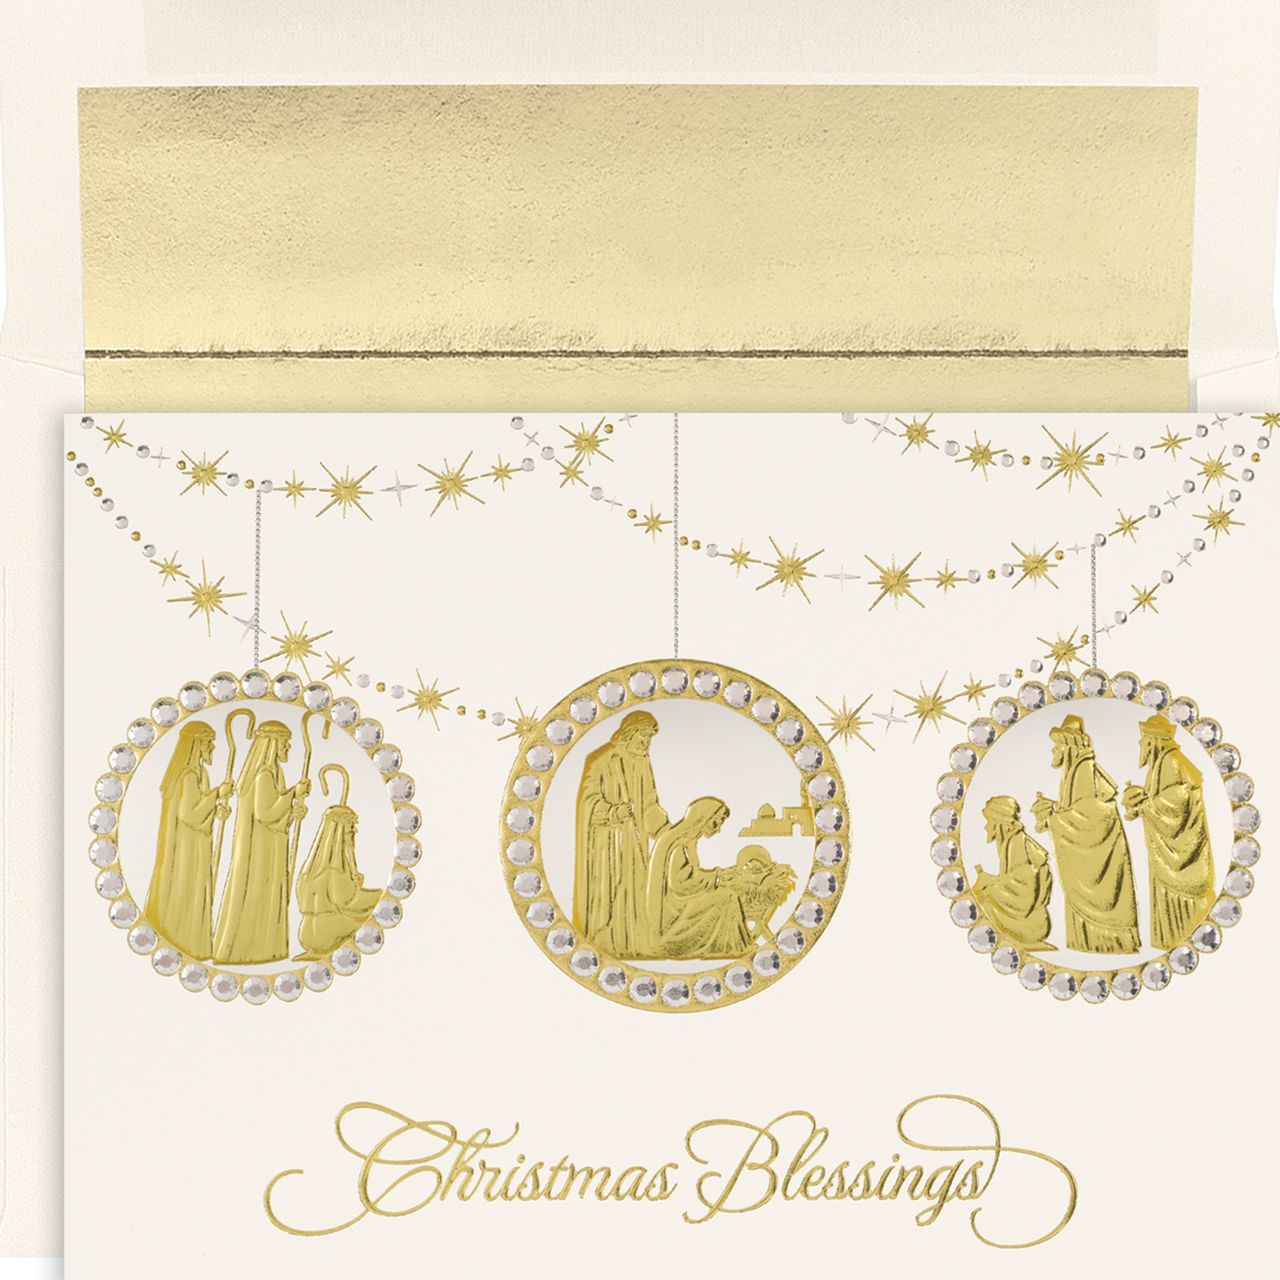 Pin on 2016 Religious Christmas Cards